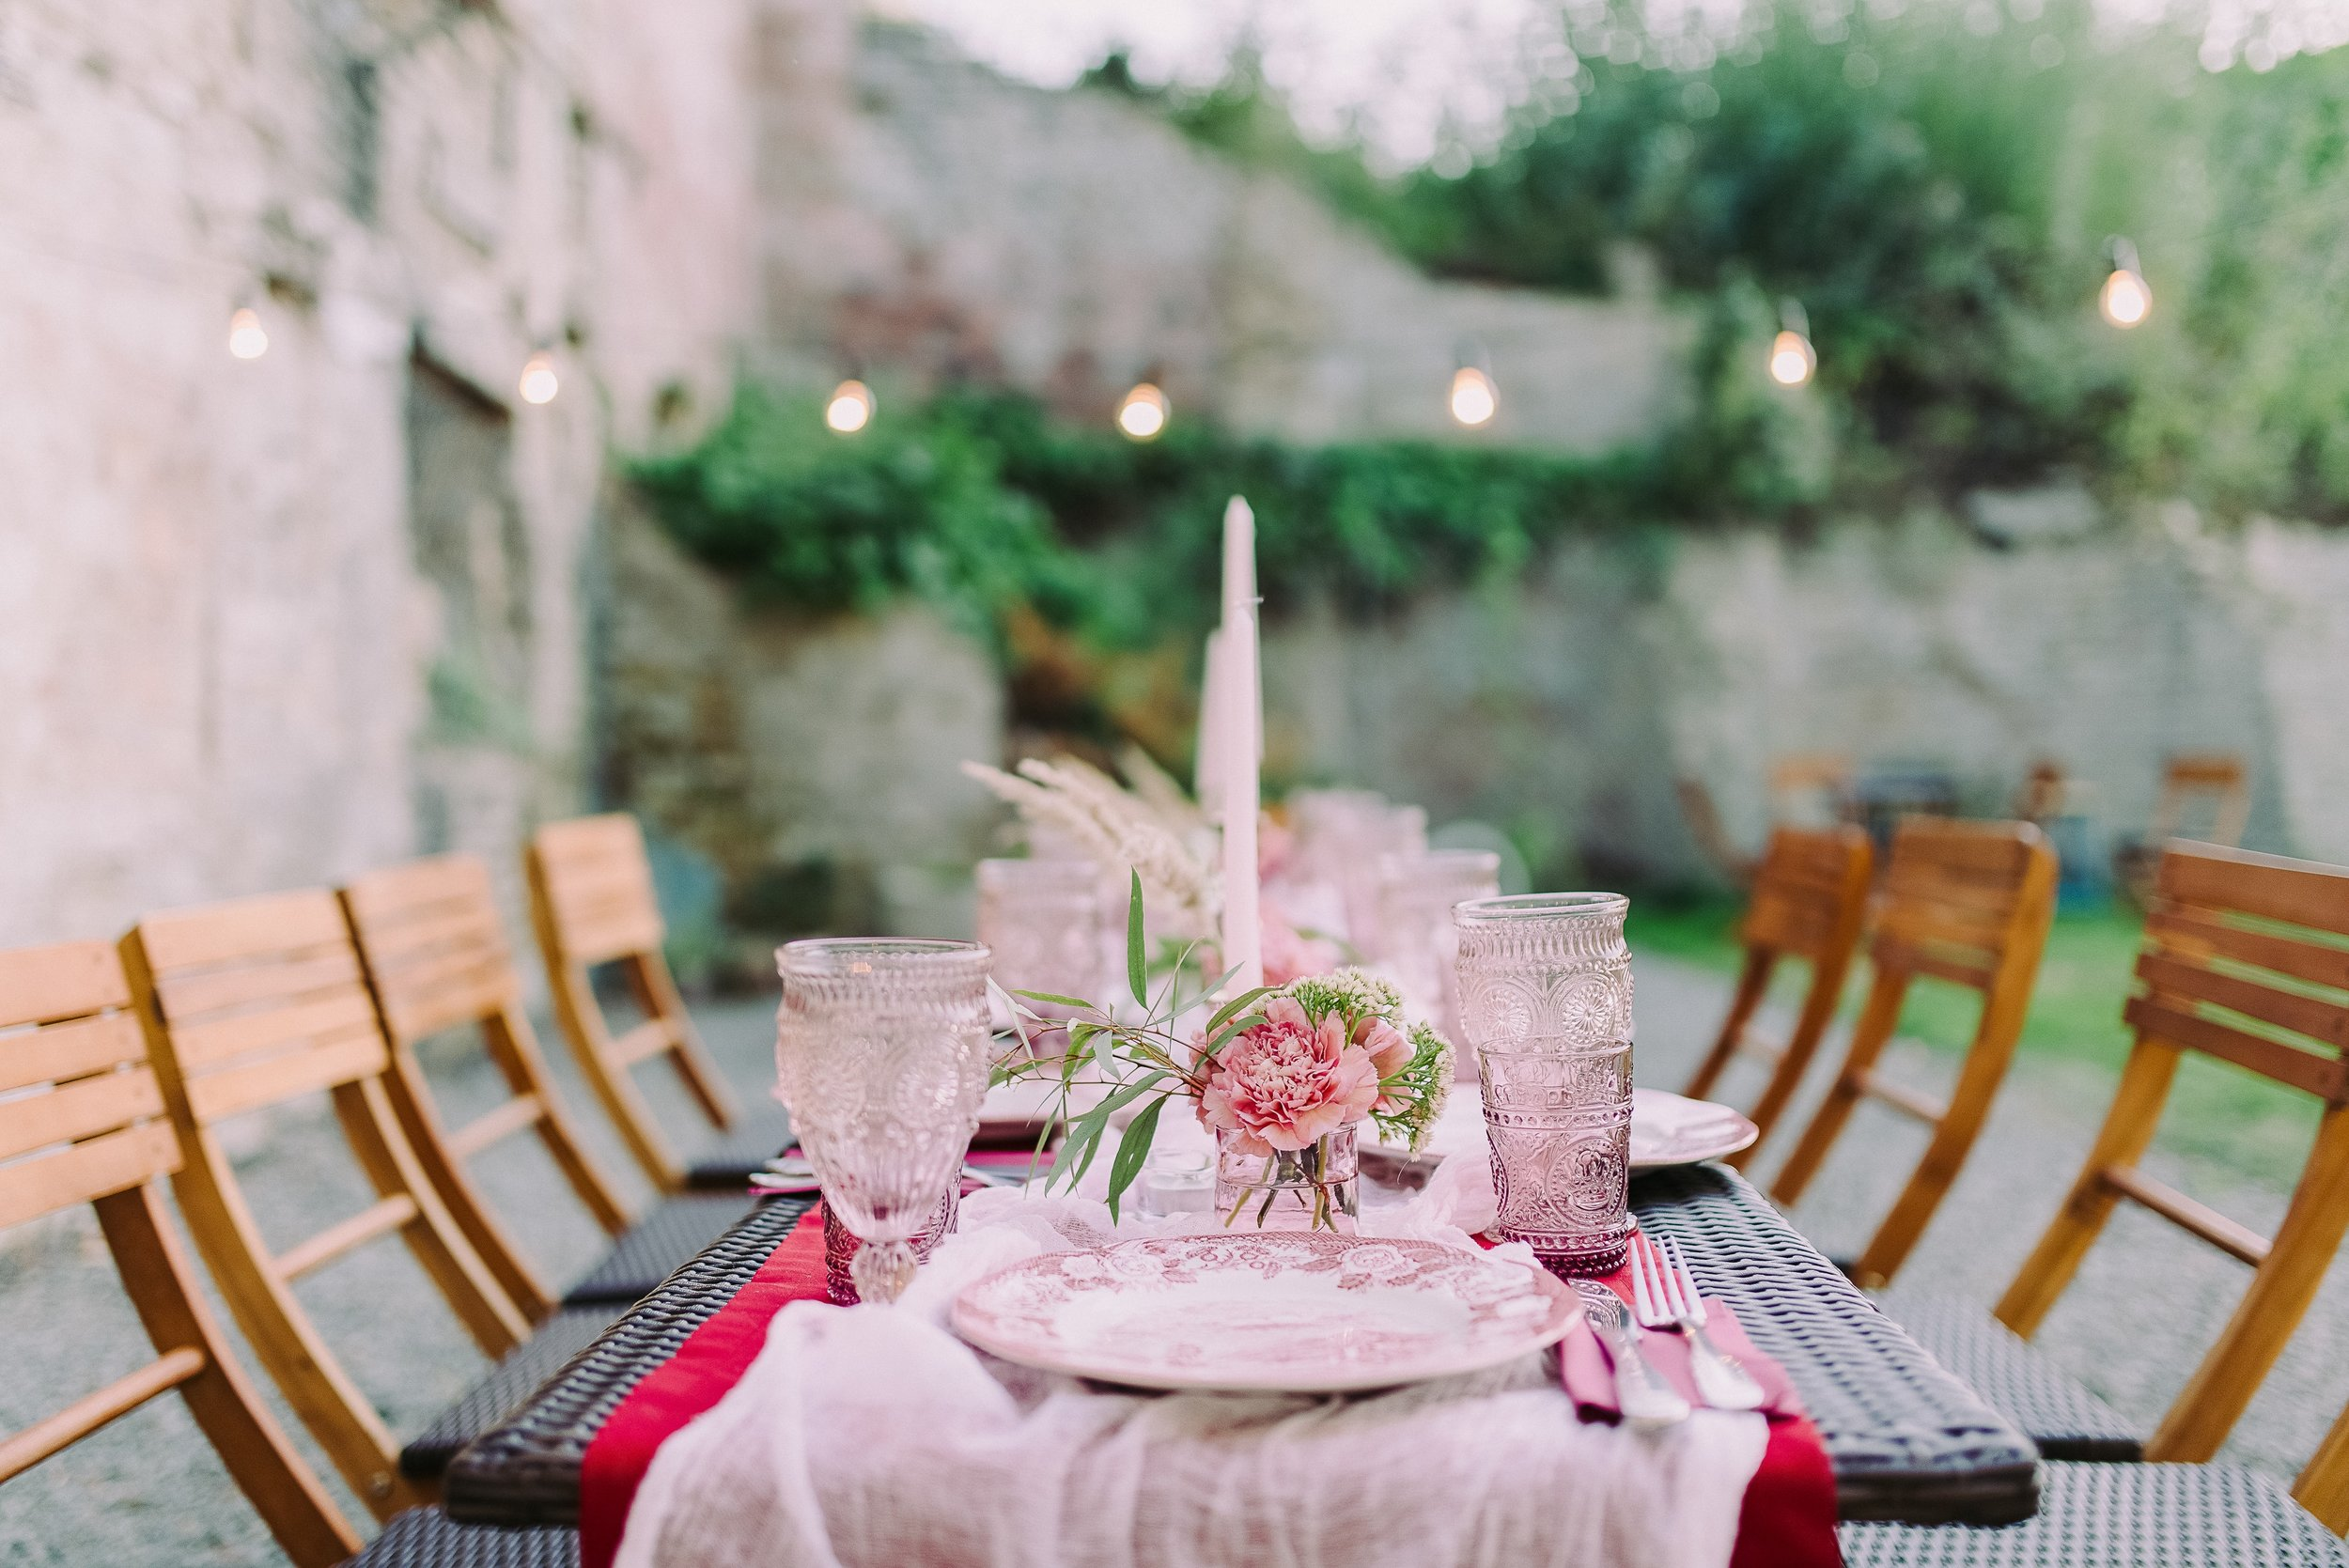 003 birthday table Photo by Dmitry Zvolskiy from Pexels as is.jpg